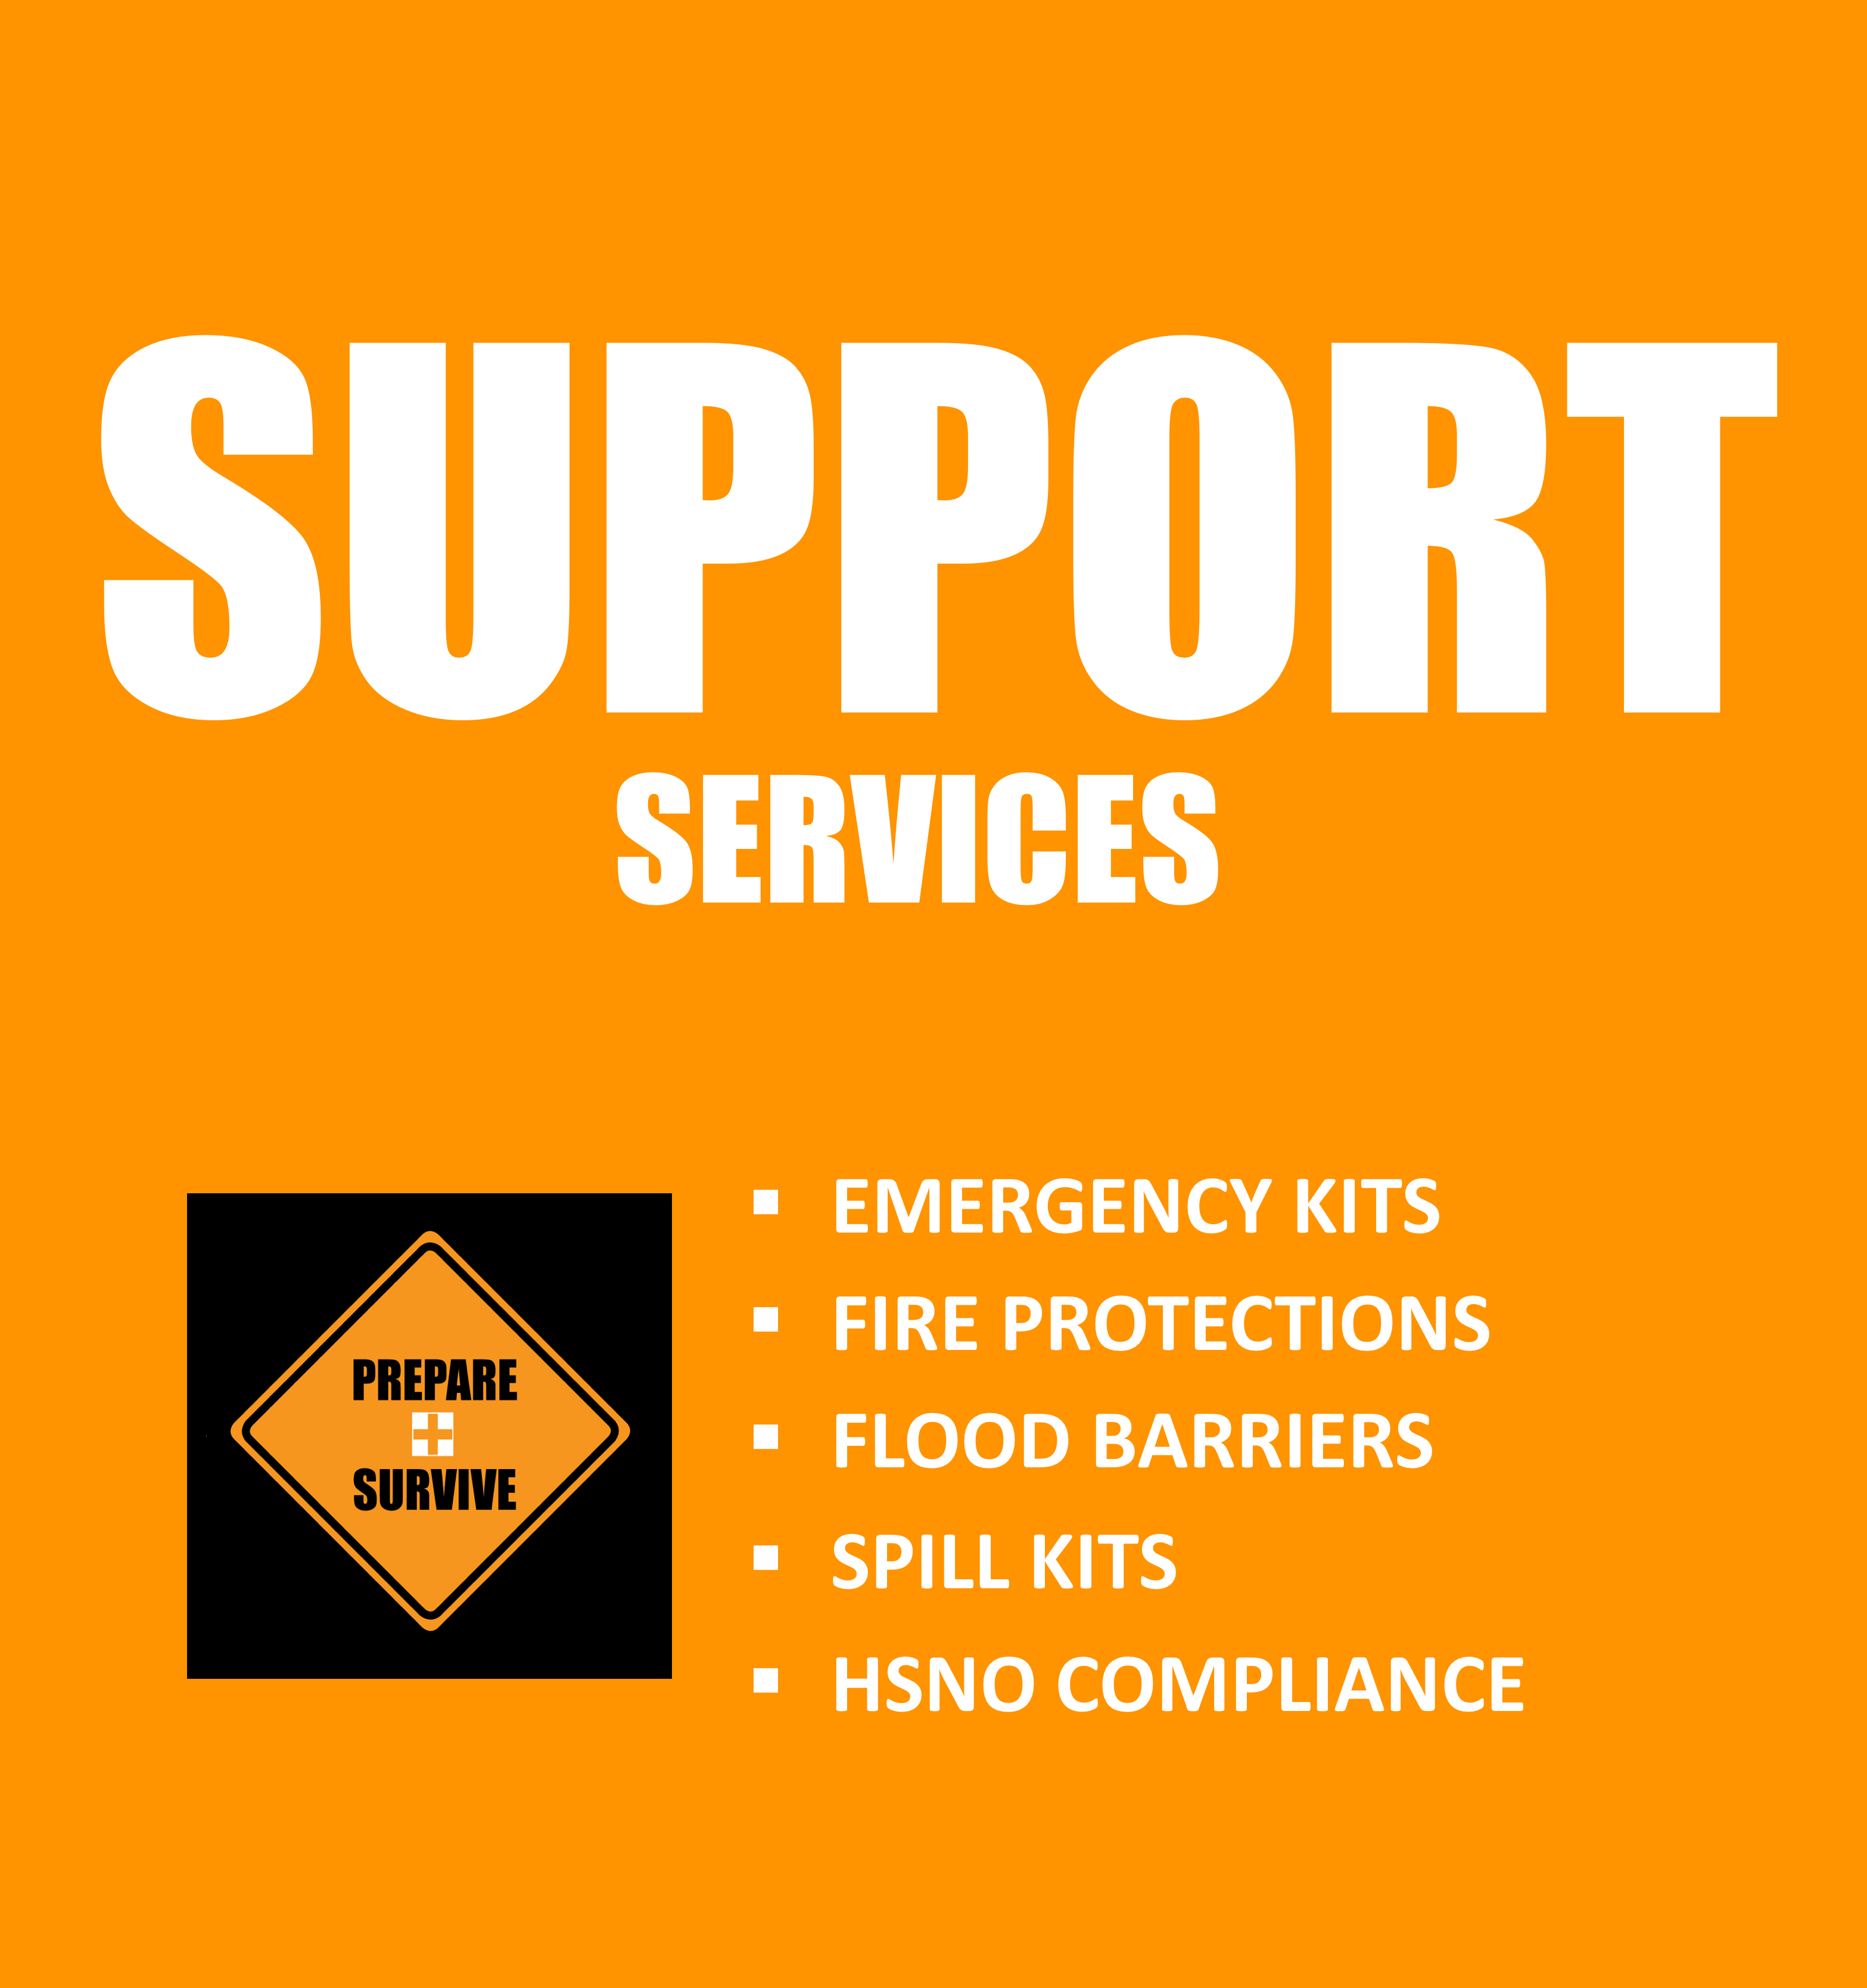 Emergency Kits, Fire Protections, Flood Barriers, Spill Kits, HSNO Compliance